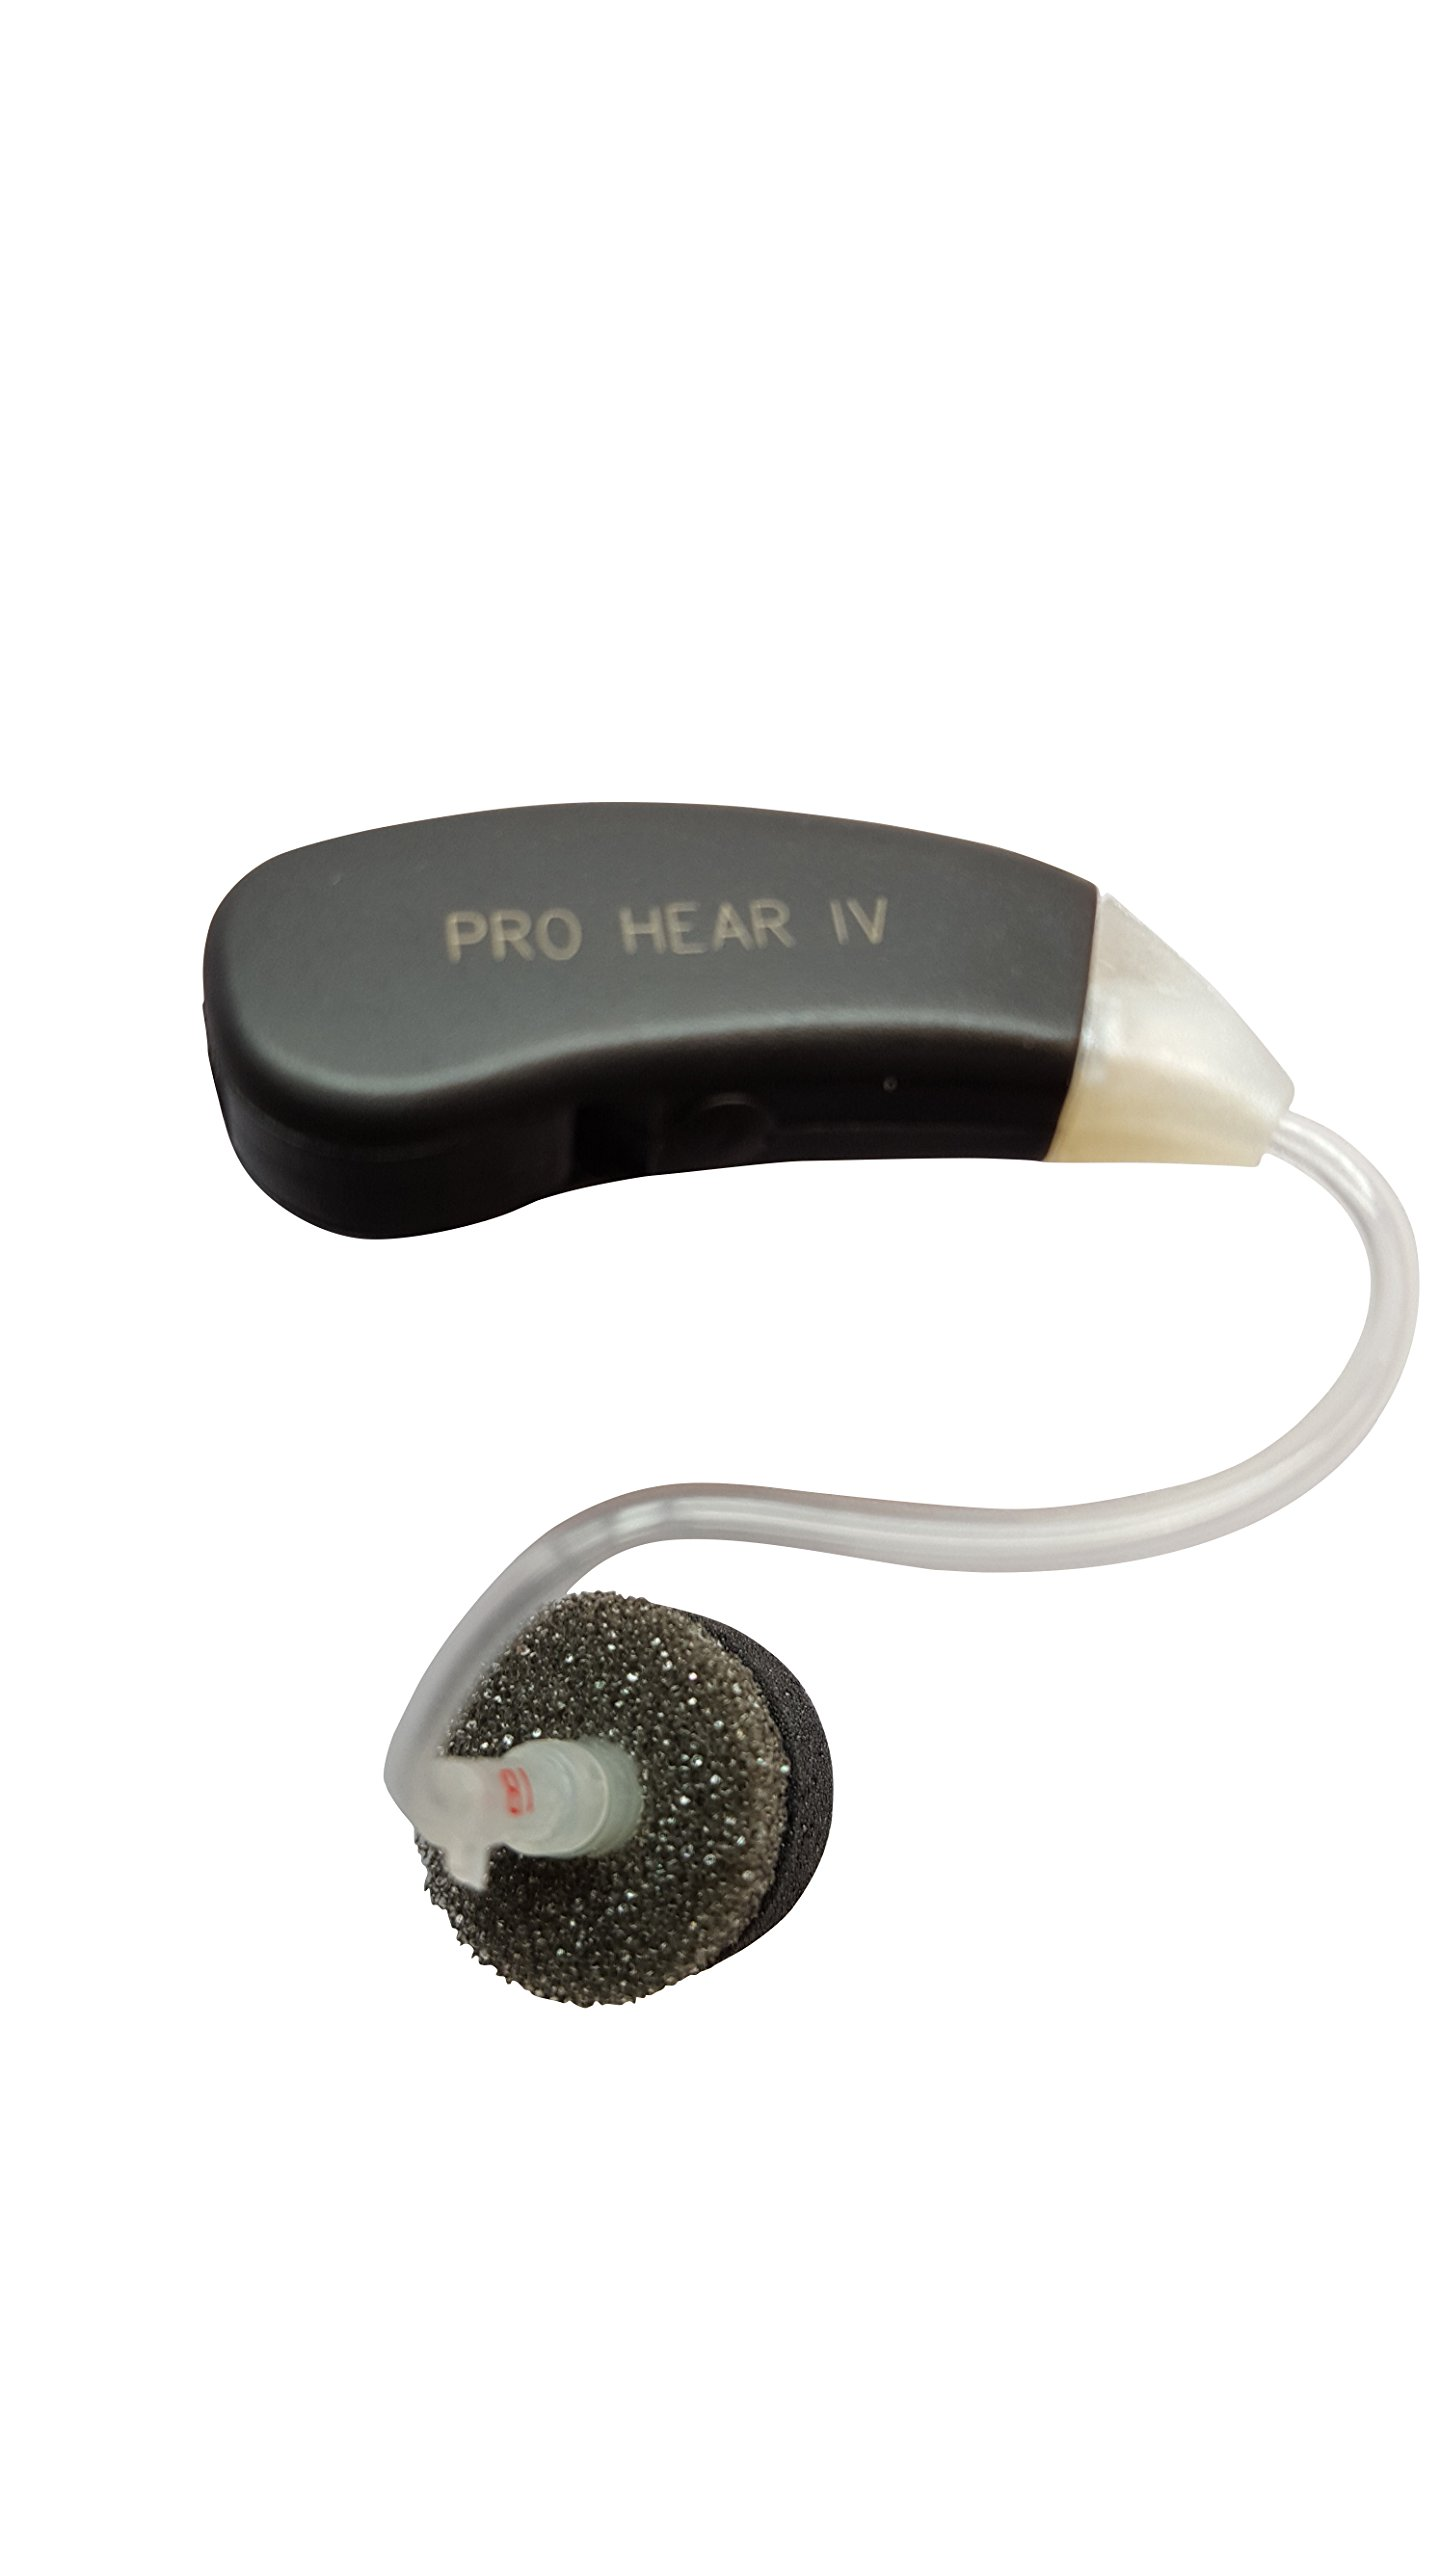 Pro Ears - Pro Hear - Pro Hear IV - Behind the Ear (BTE) - PH4BTE - Digital Hearing Device - Hearing Protection and Noise Amplification - Discreet Aid for Hearing by Pro Ears